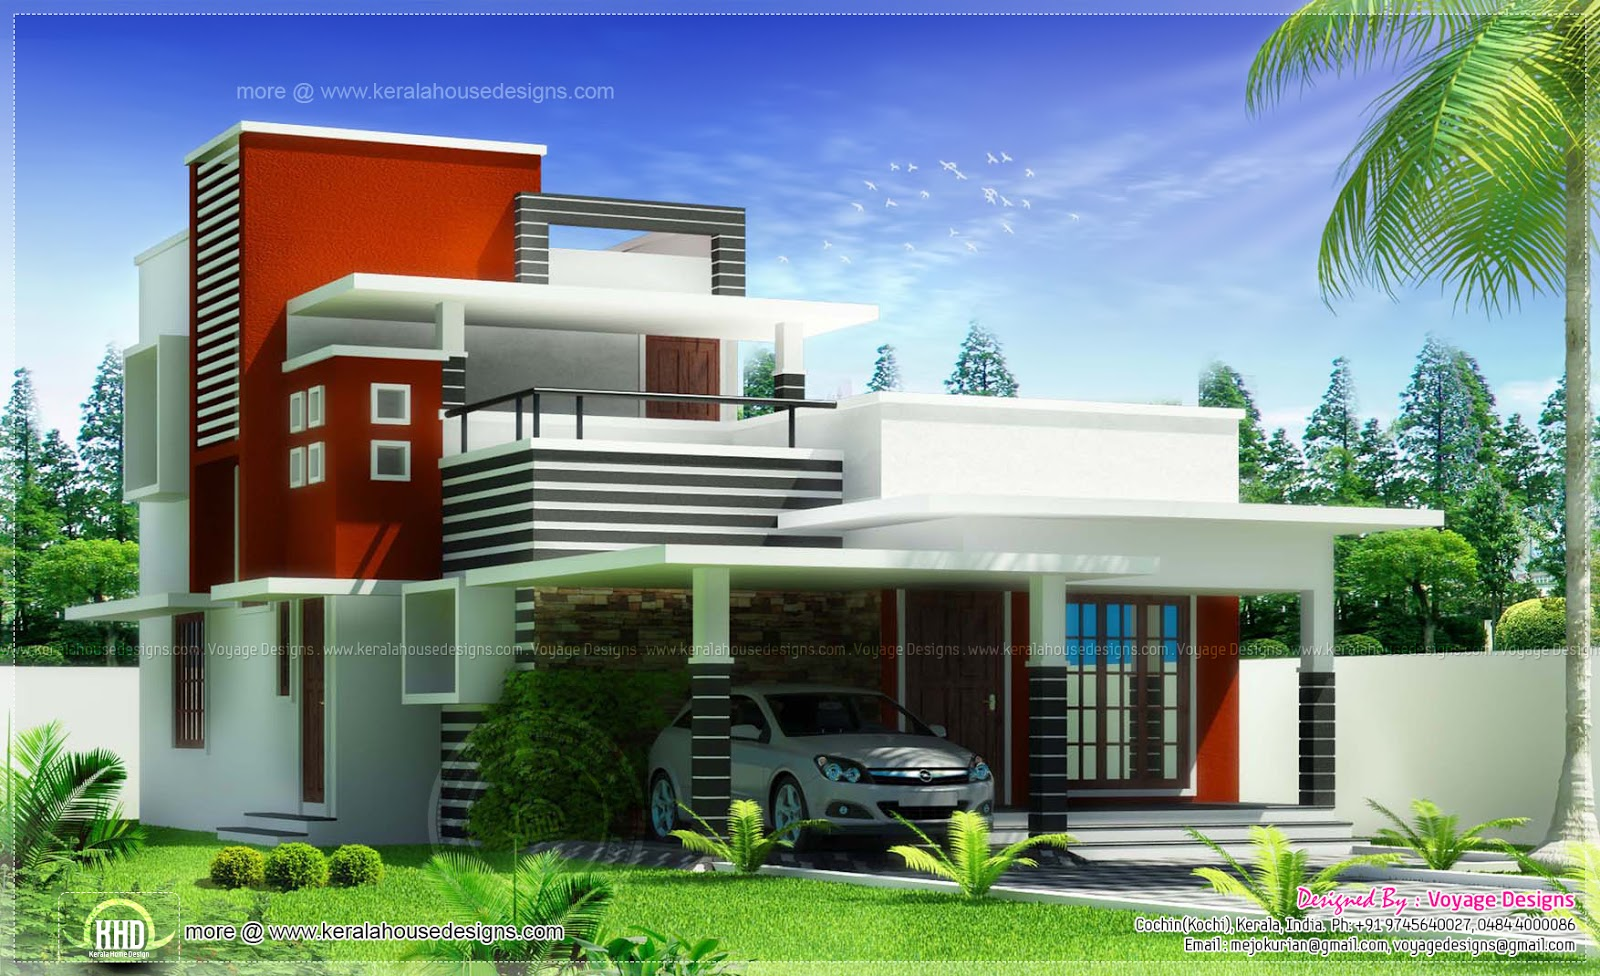 3 bed room contemporary style house kerala home design for Modern house plans 2015